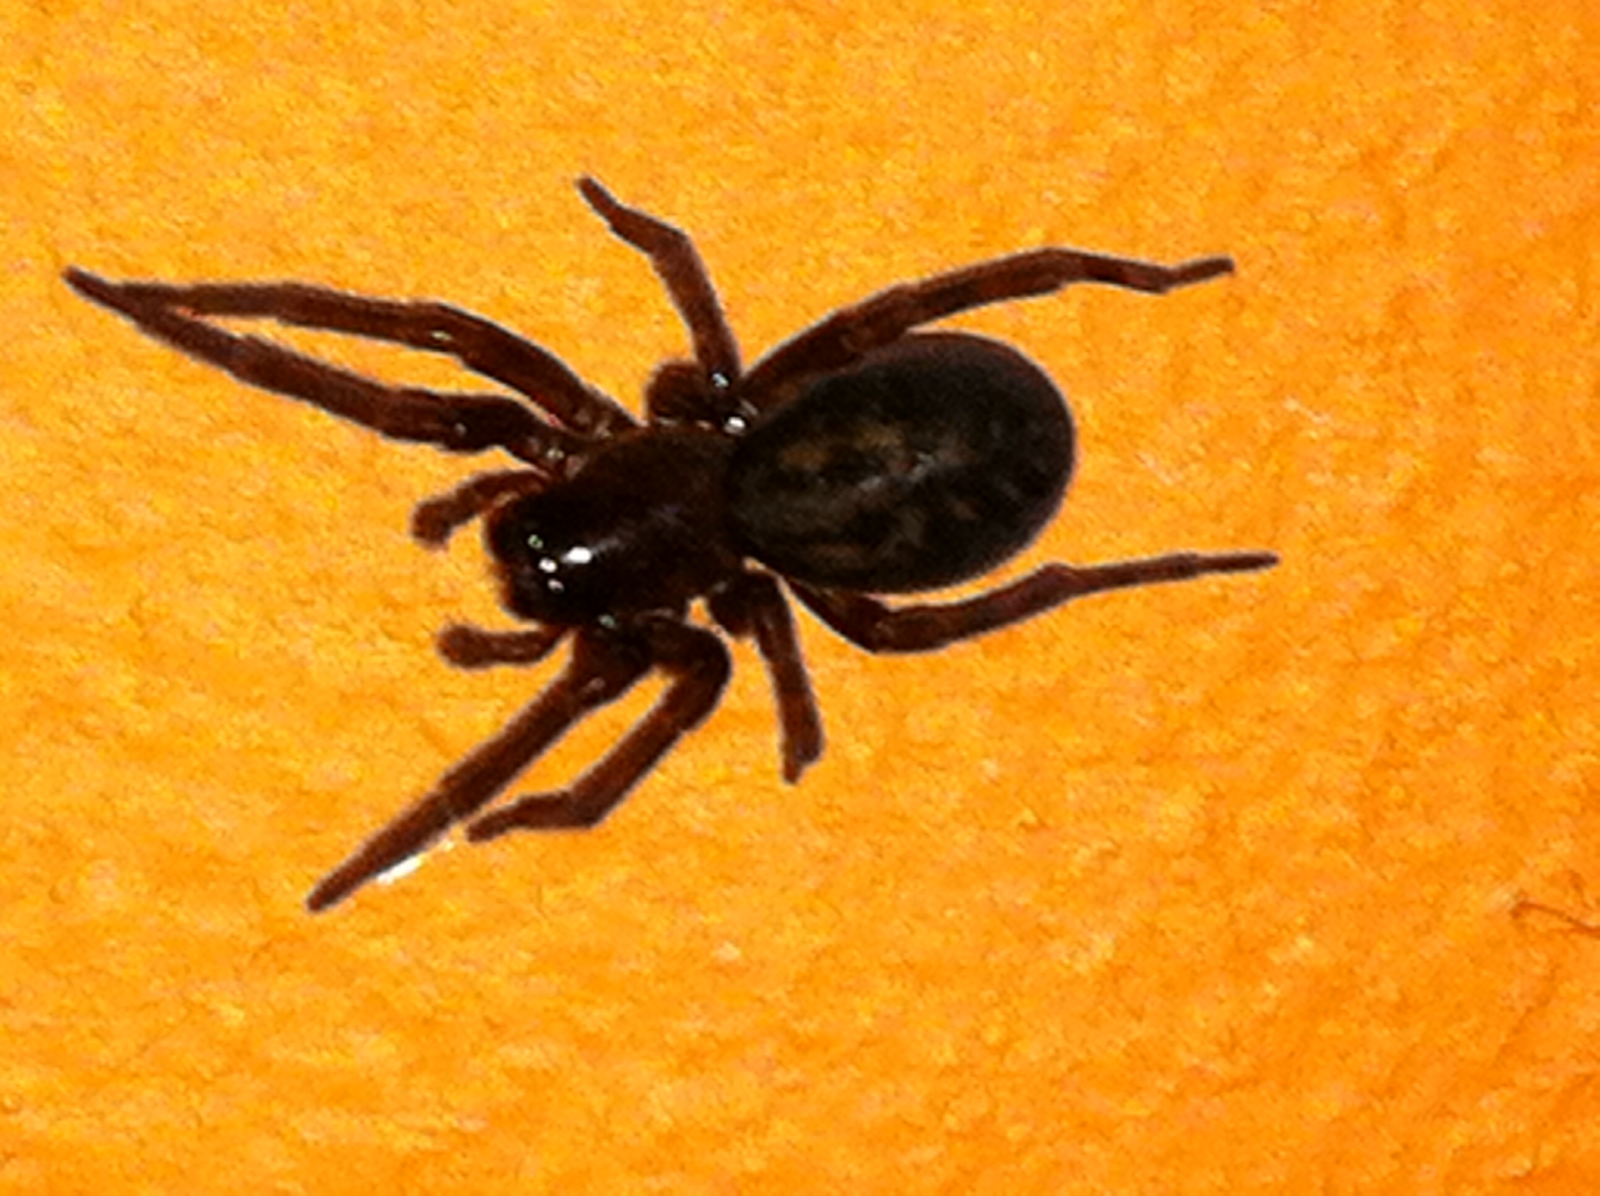 in some this large black spider was found crawling in the basement